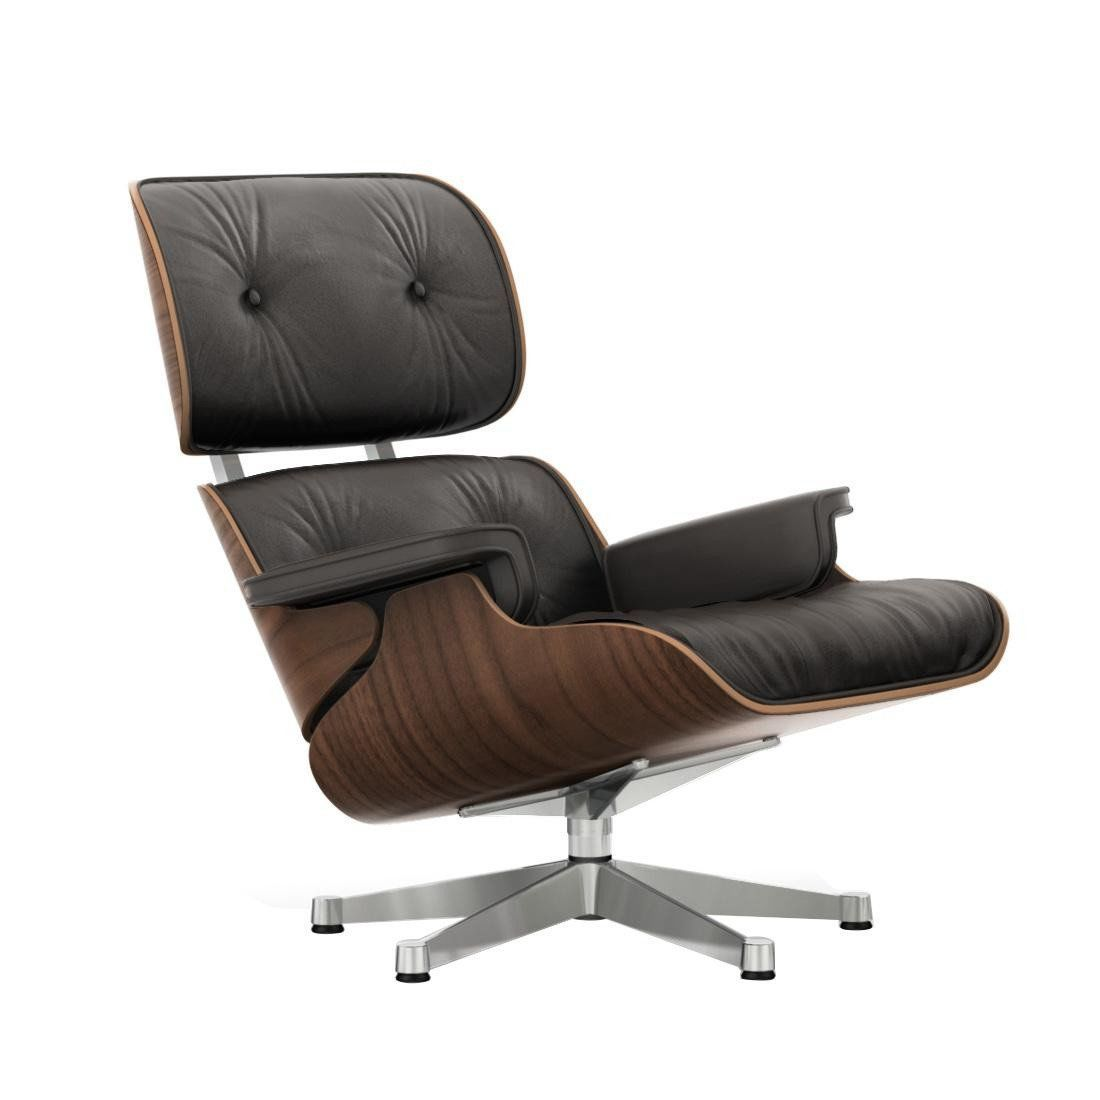 Eames Lounge Chair eames lounge chair vitra ambientedirect com